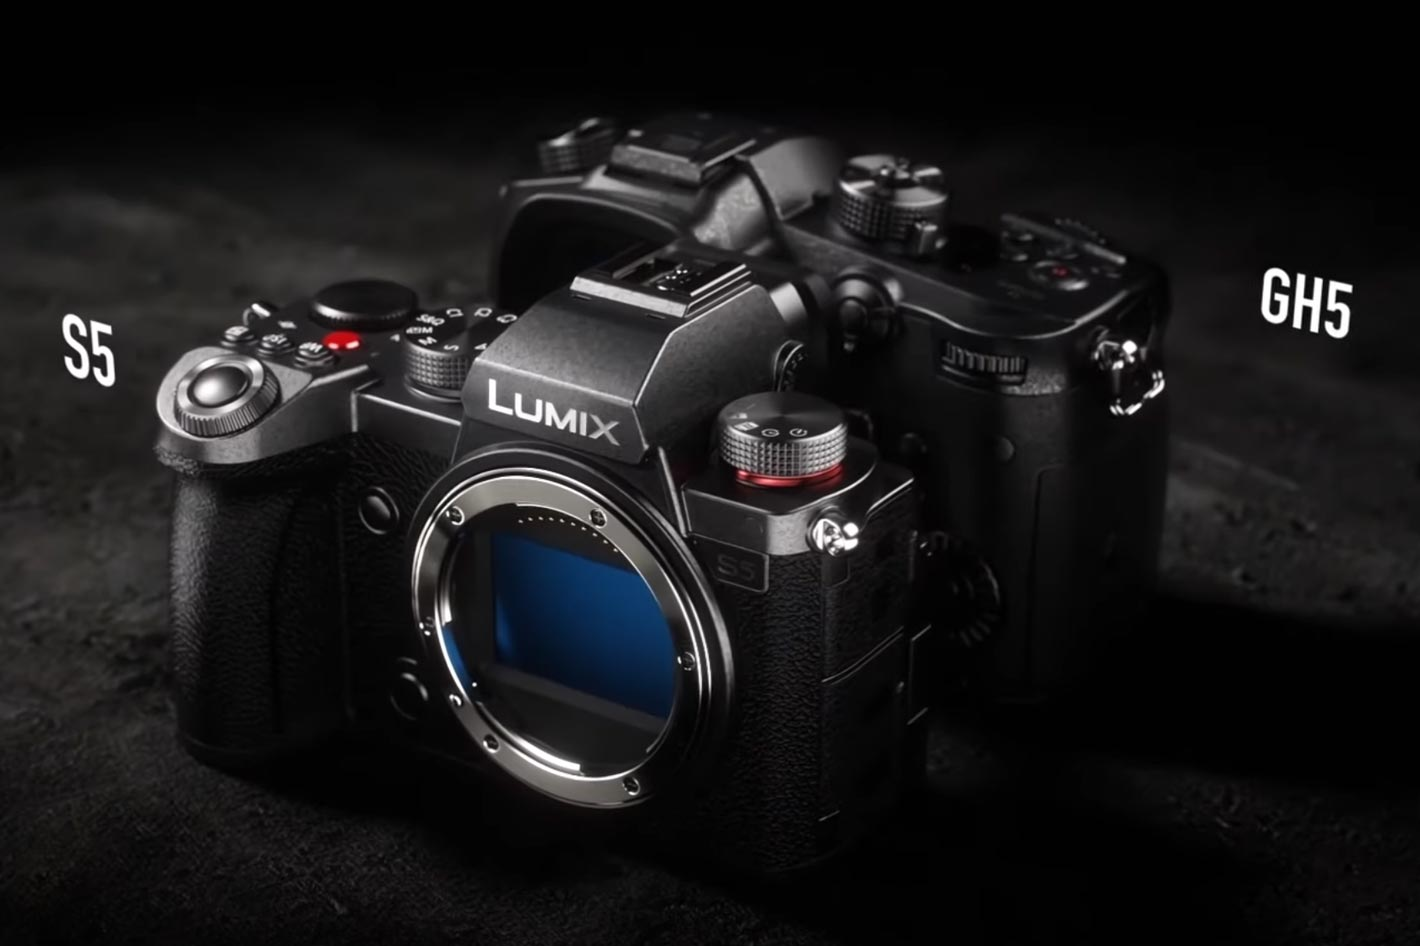 LUMIX S5: a new camera for videographers and photographers 3